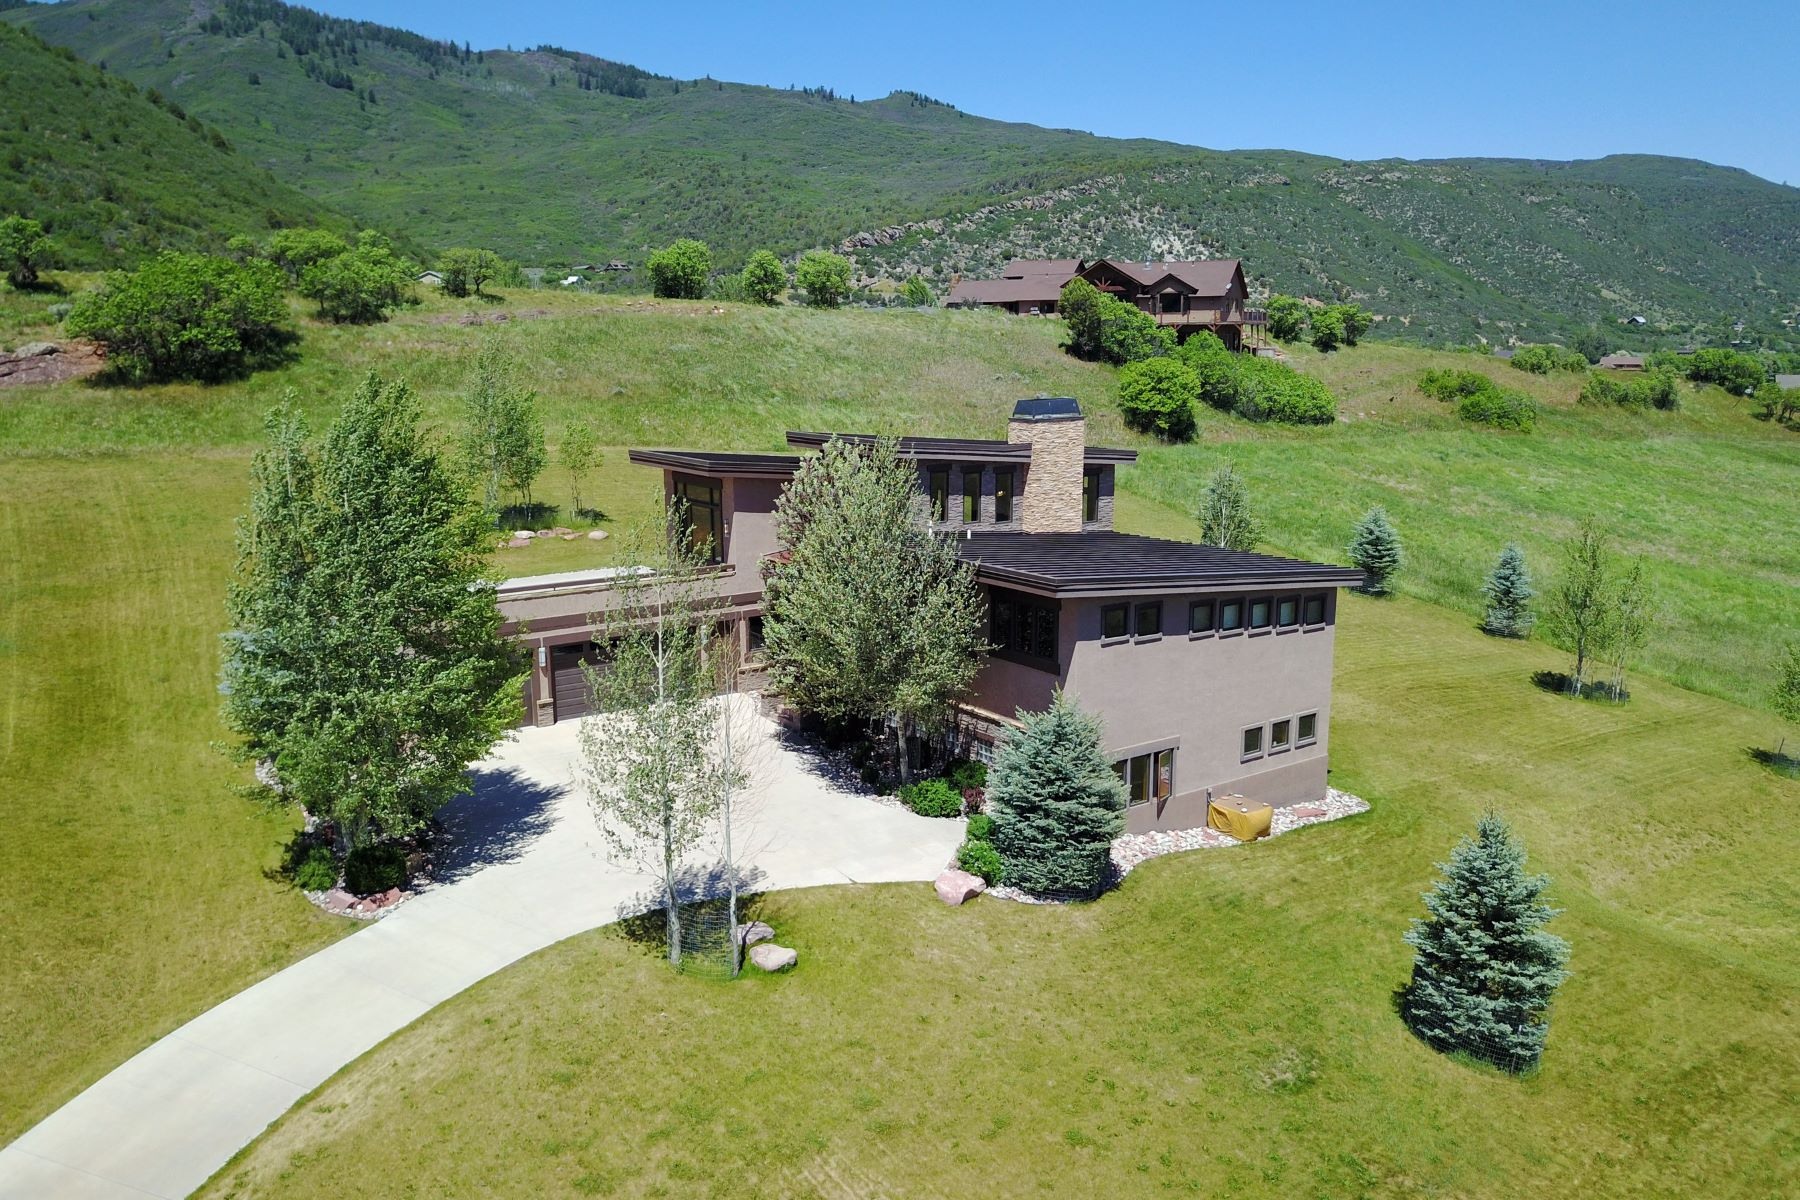 Maison unifamiliale pour l Vente à Mountain Modern Home in Springridge Reserve 341 Spring View Drive Glenwood Springs, Colorado, 81601 États-Unis